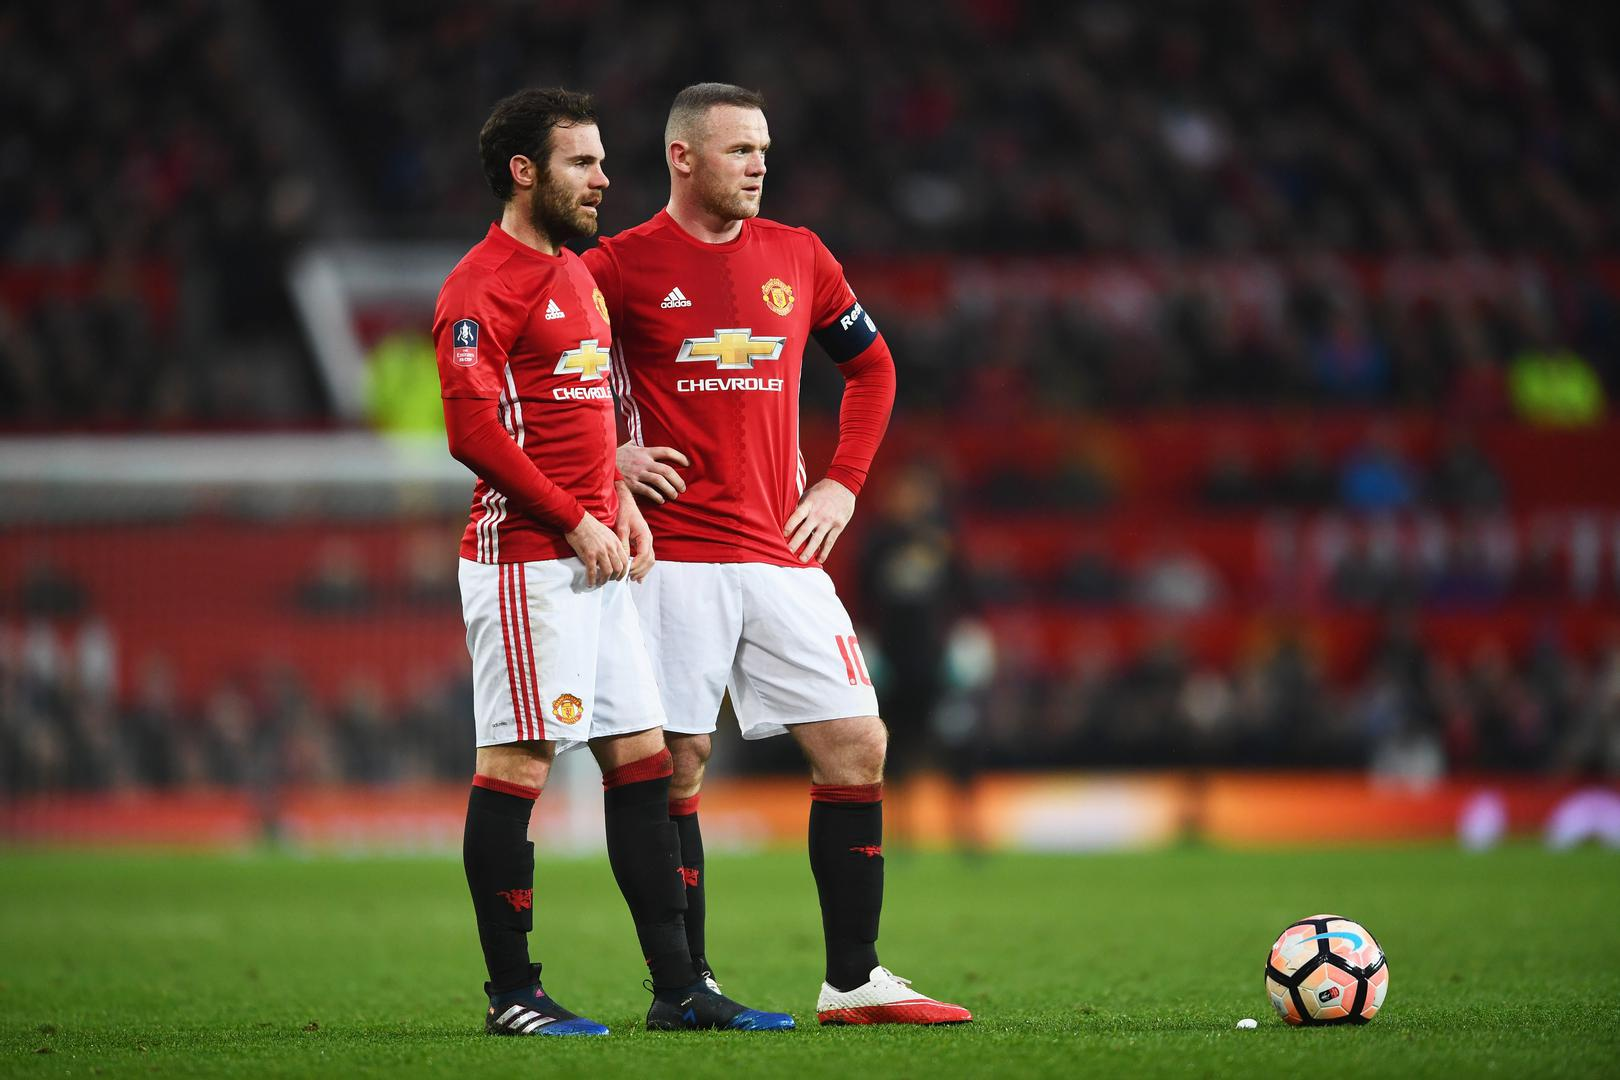 Juan Mata and Wayne Rooney stand over a free-kick during Manchester United's game against Wigan Athletic in 2017